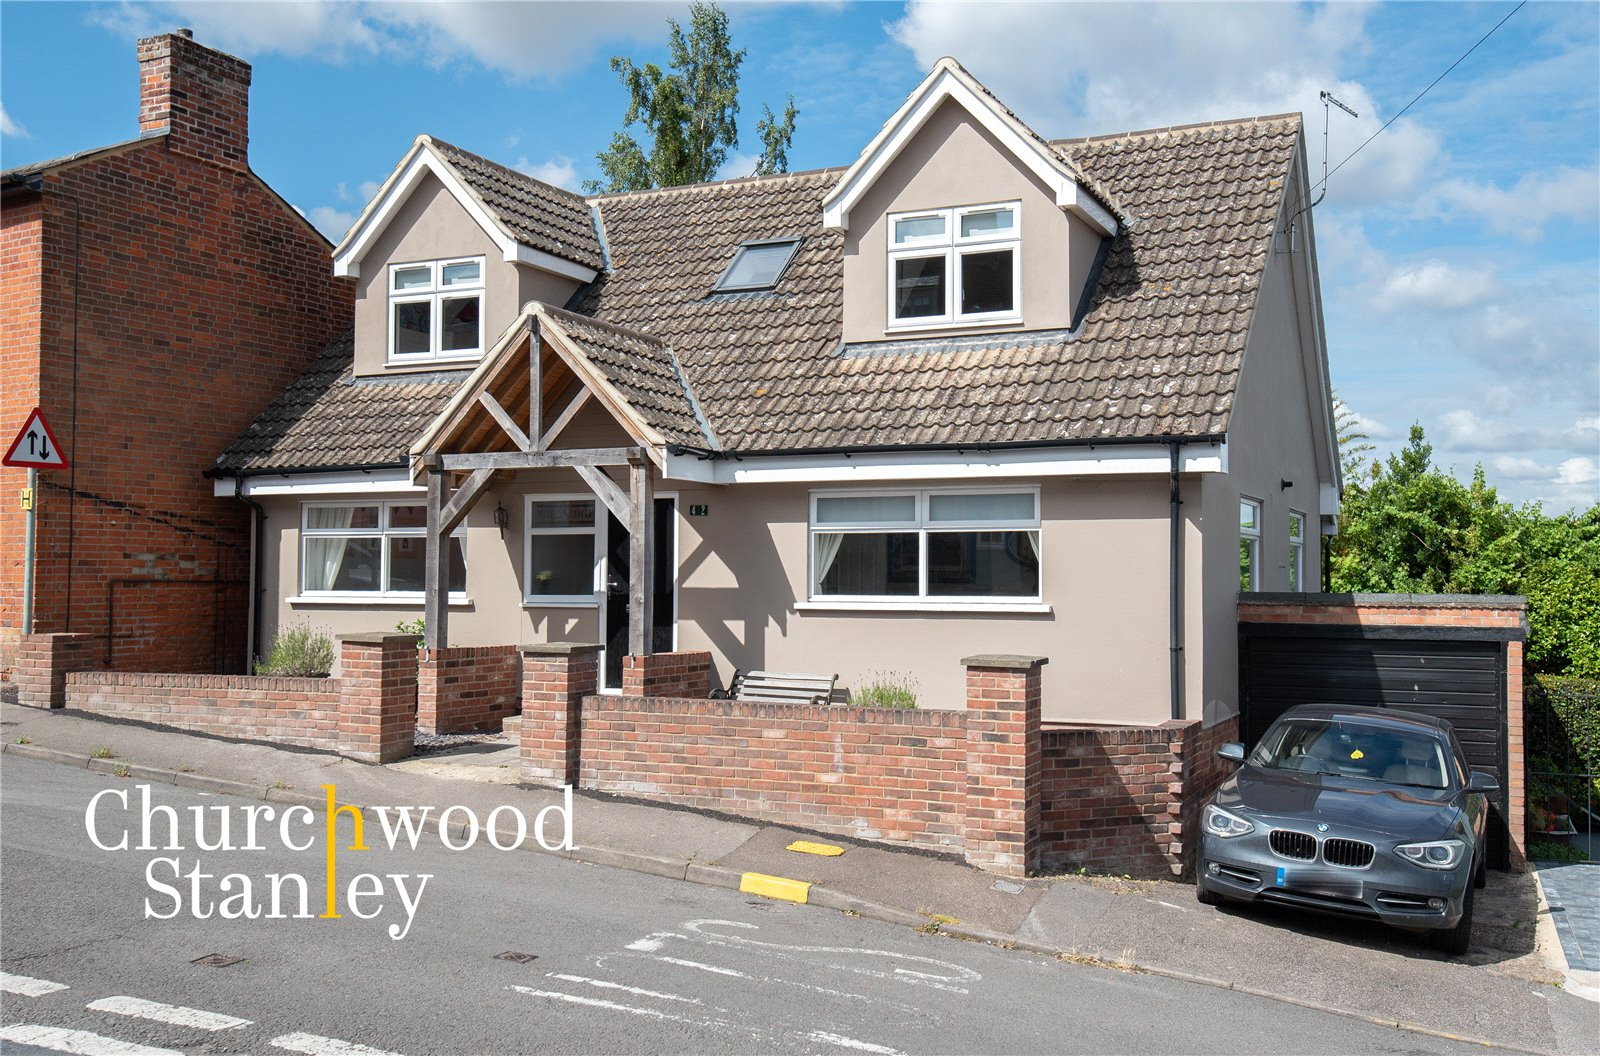 4 bed house for sale in Brook Street, Manningtree, Essex 0